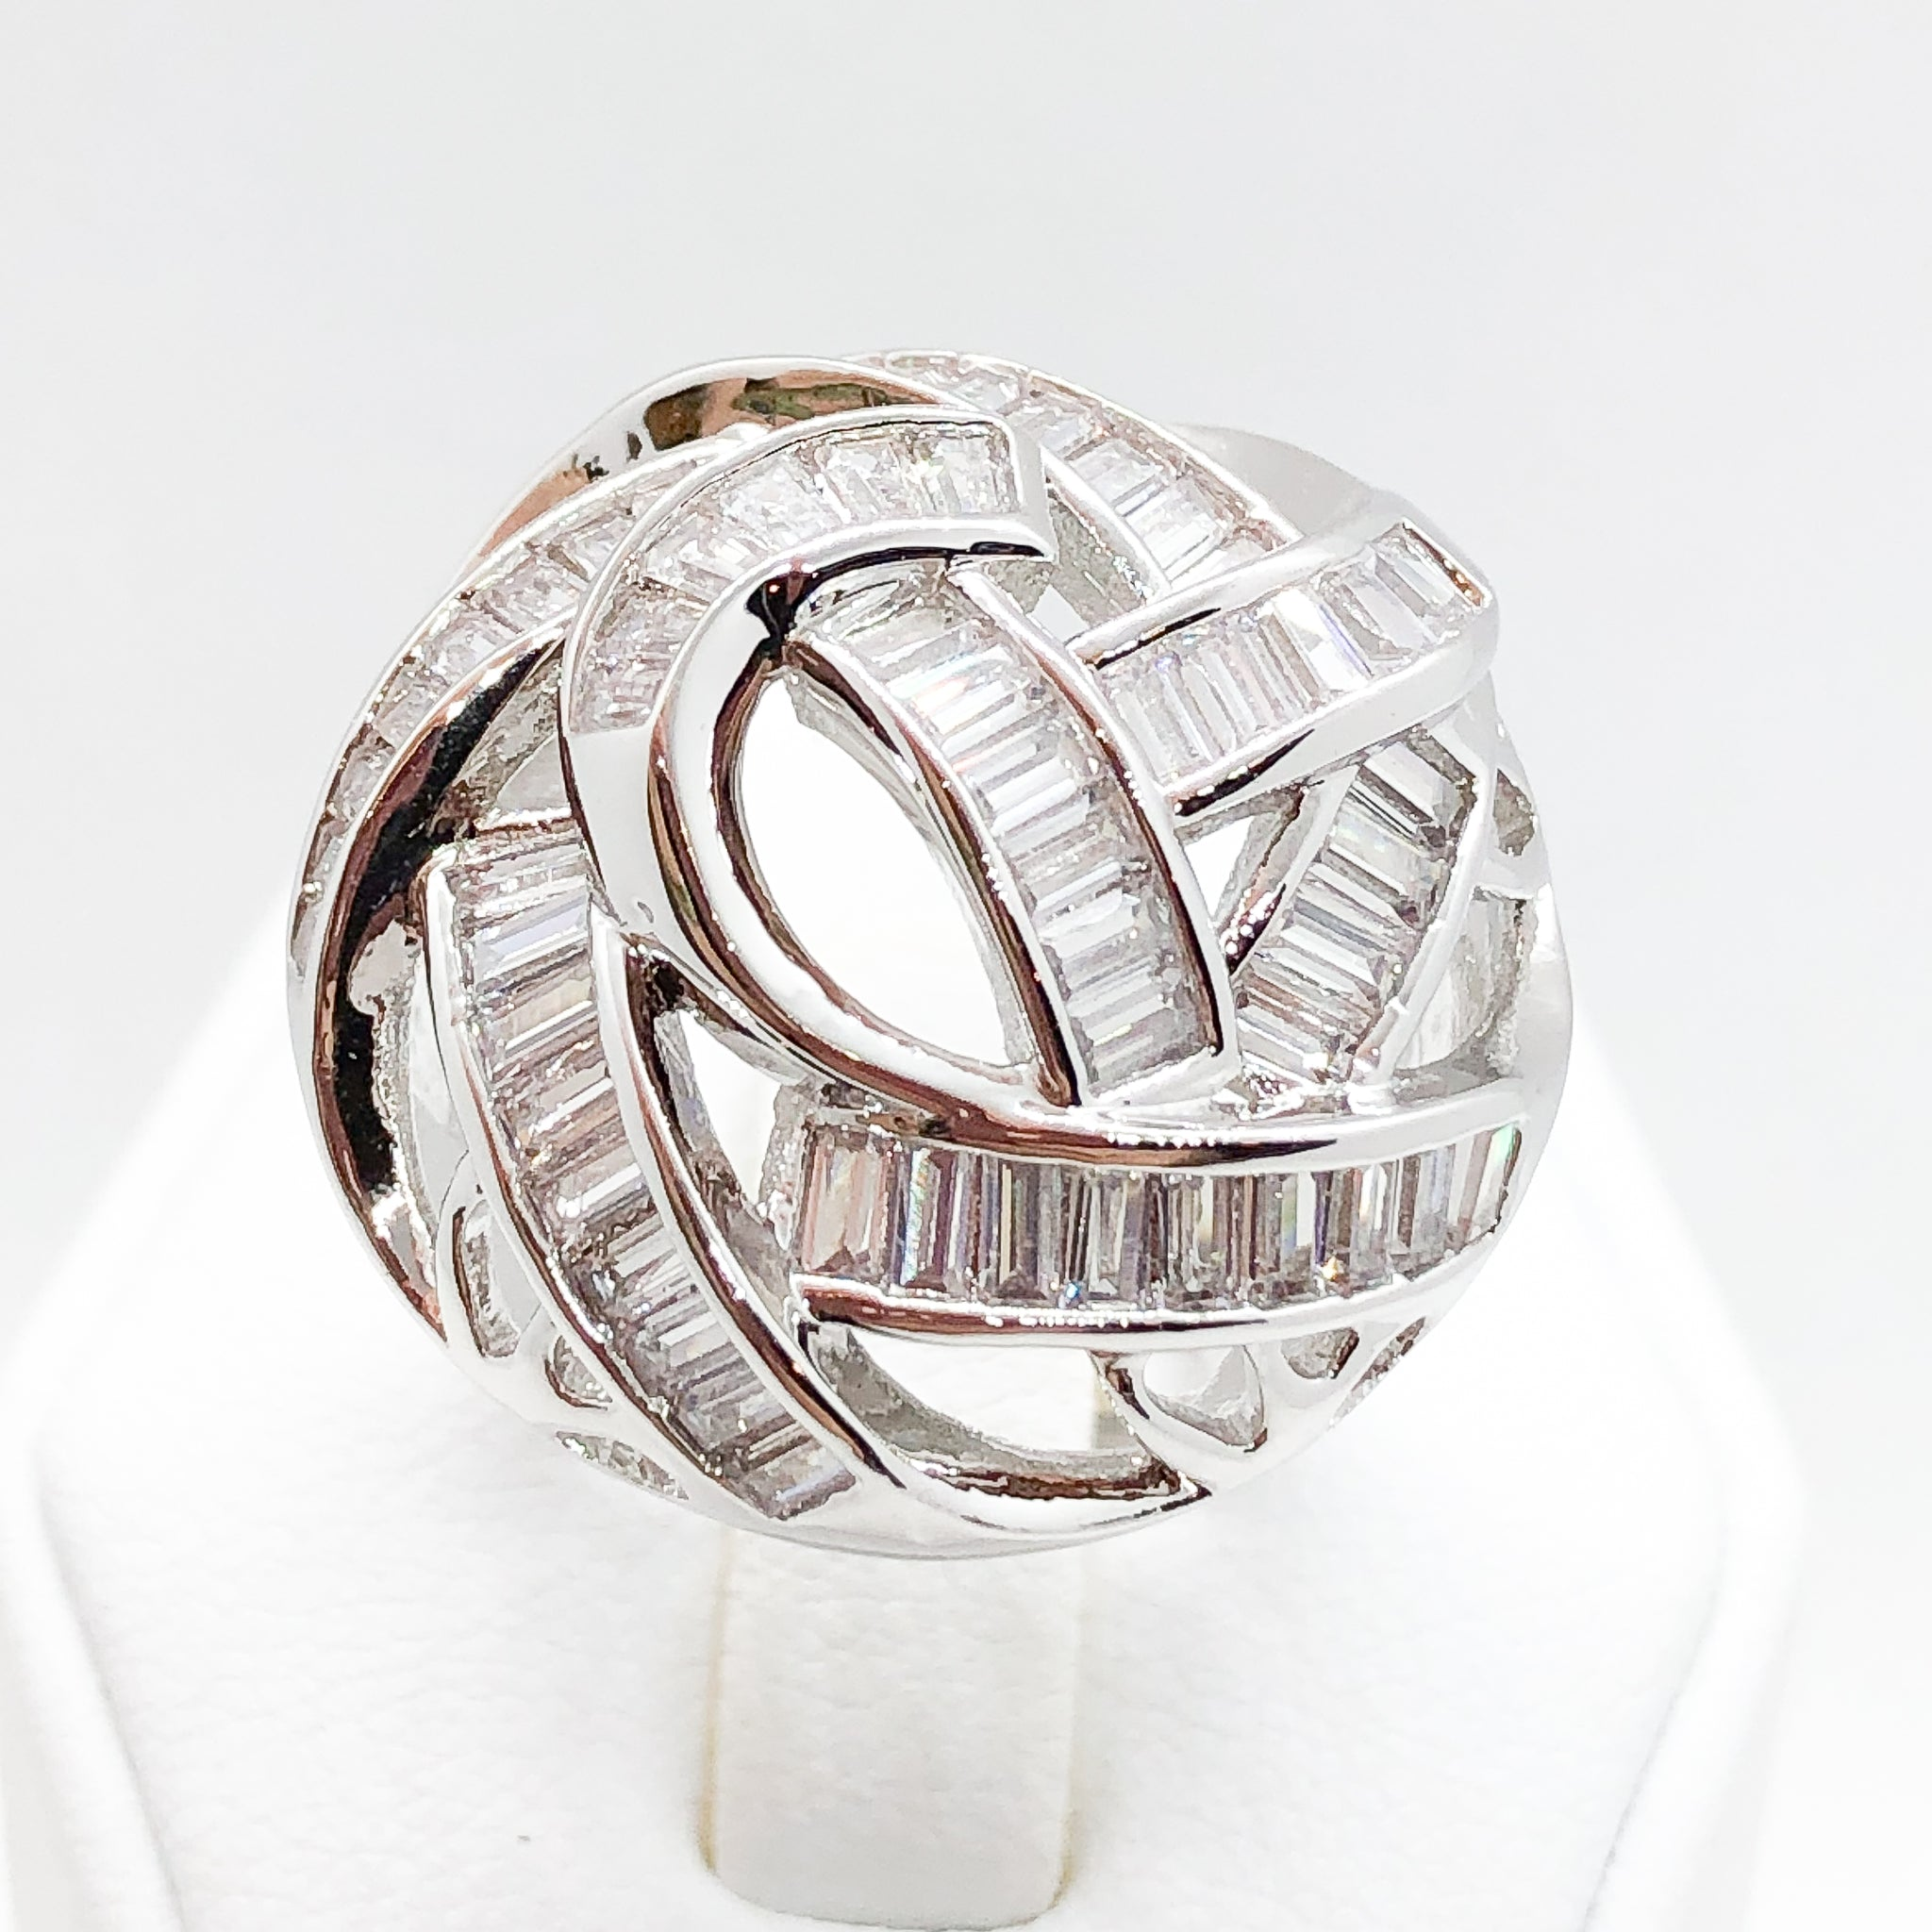 ID:R7511 Women Jewelry 18K White Gold GF Shimmering Eye-Catching Clear Baguette Stones Unique Dome Eternity Ring